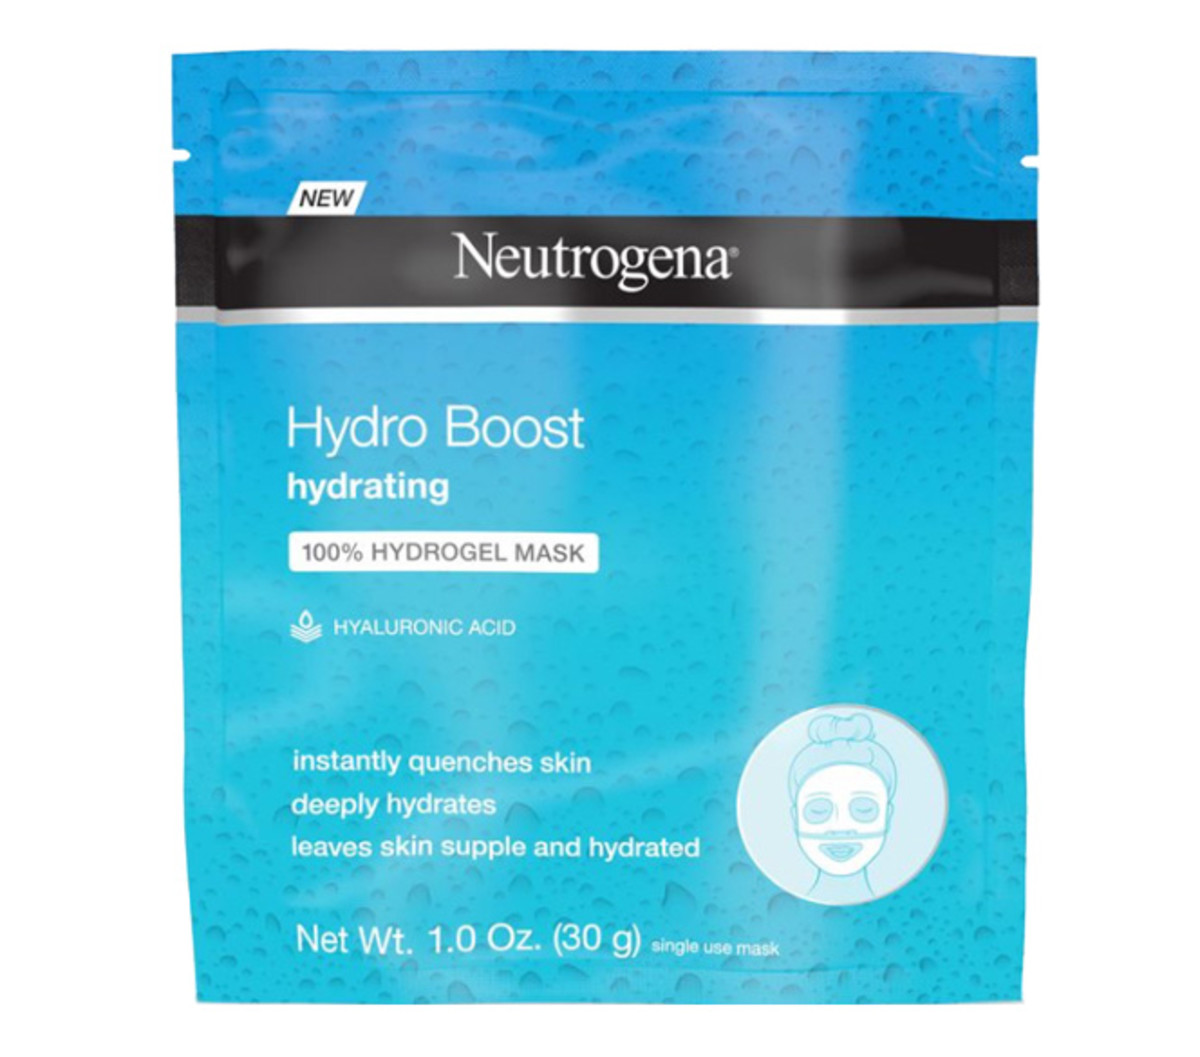 Neutrogena Hydro Boost Hydrating Hydrogel Mask-BEAUTYGEEKS